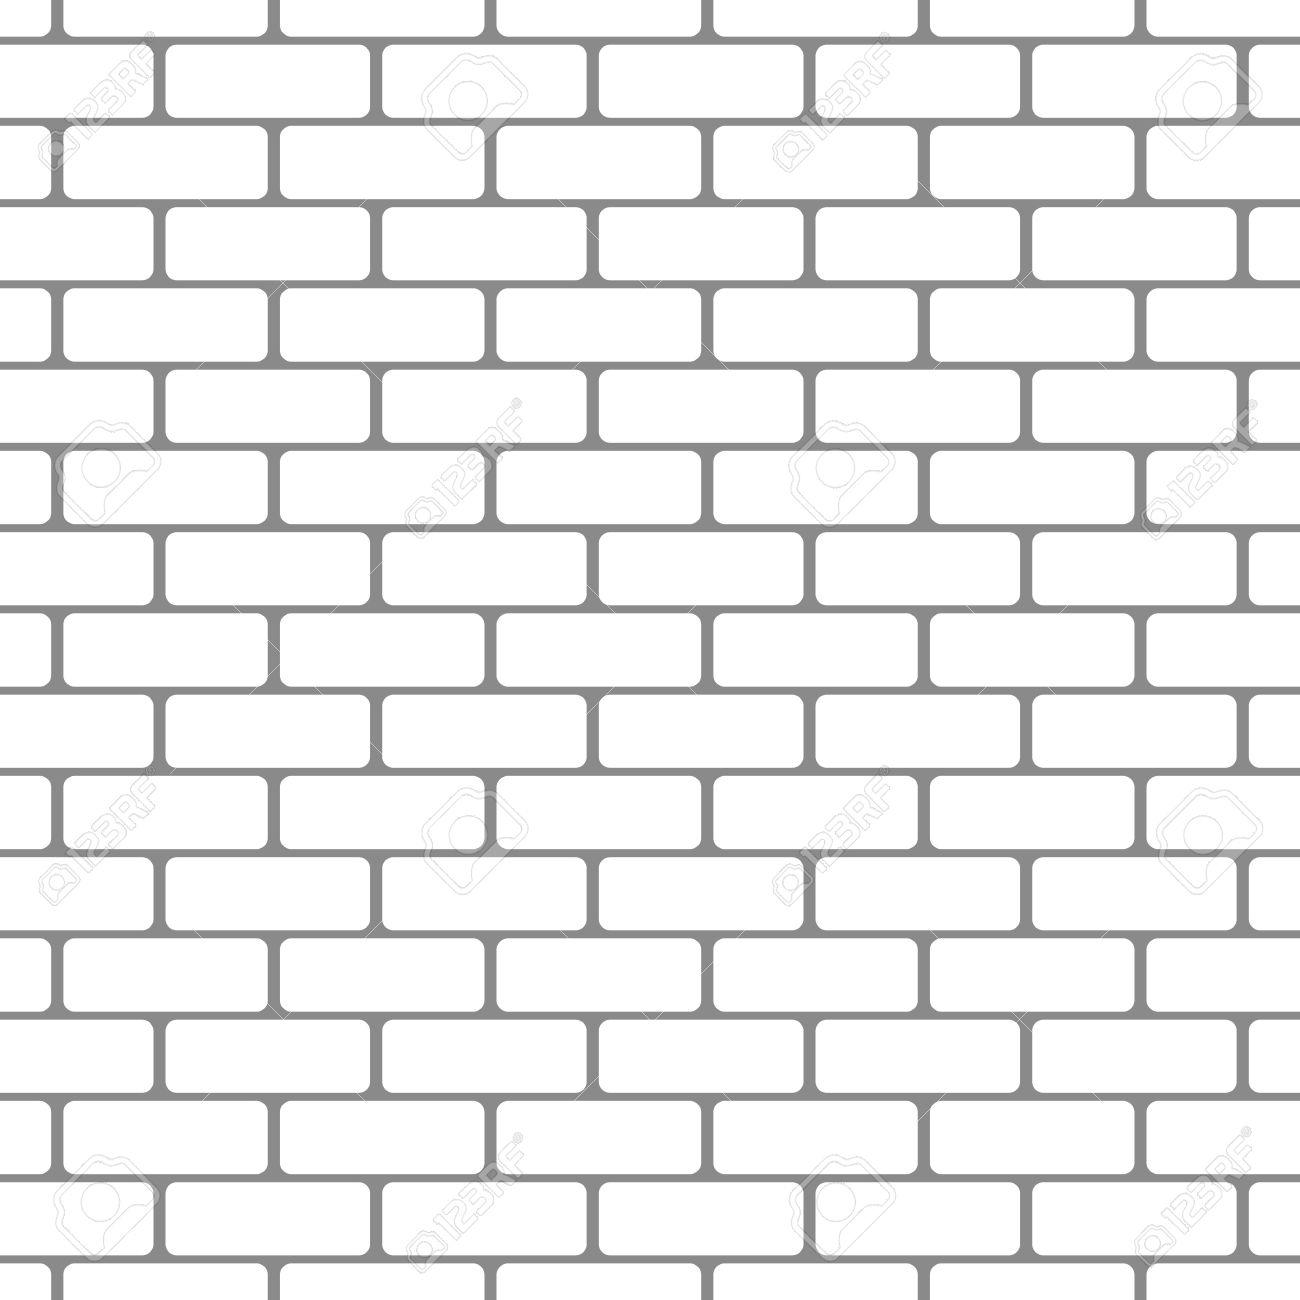 Brick wall clipart black and white foyer Exterior » Clipart Station.